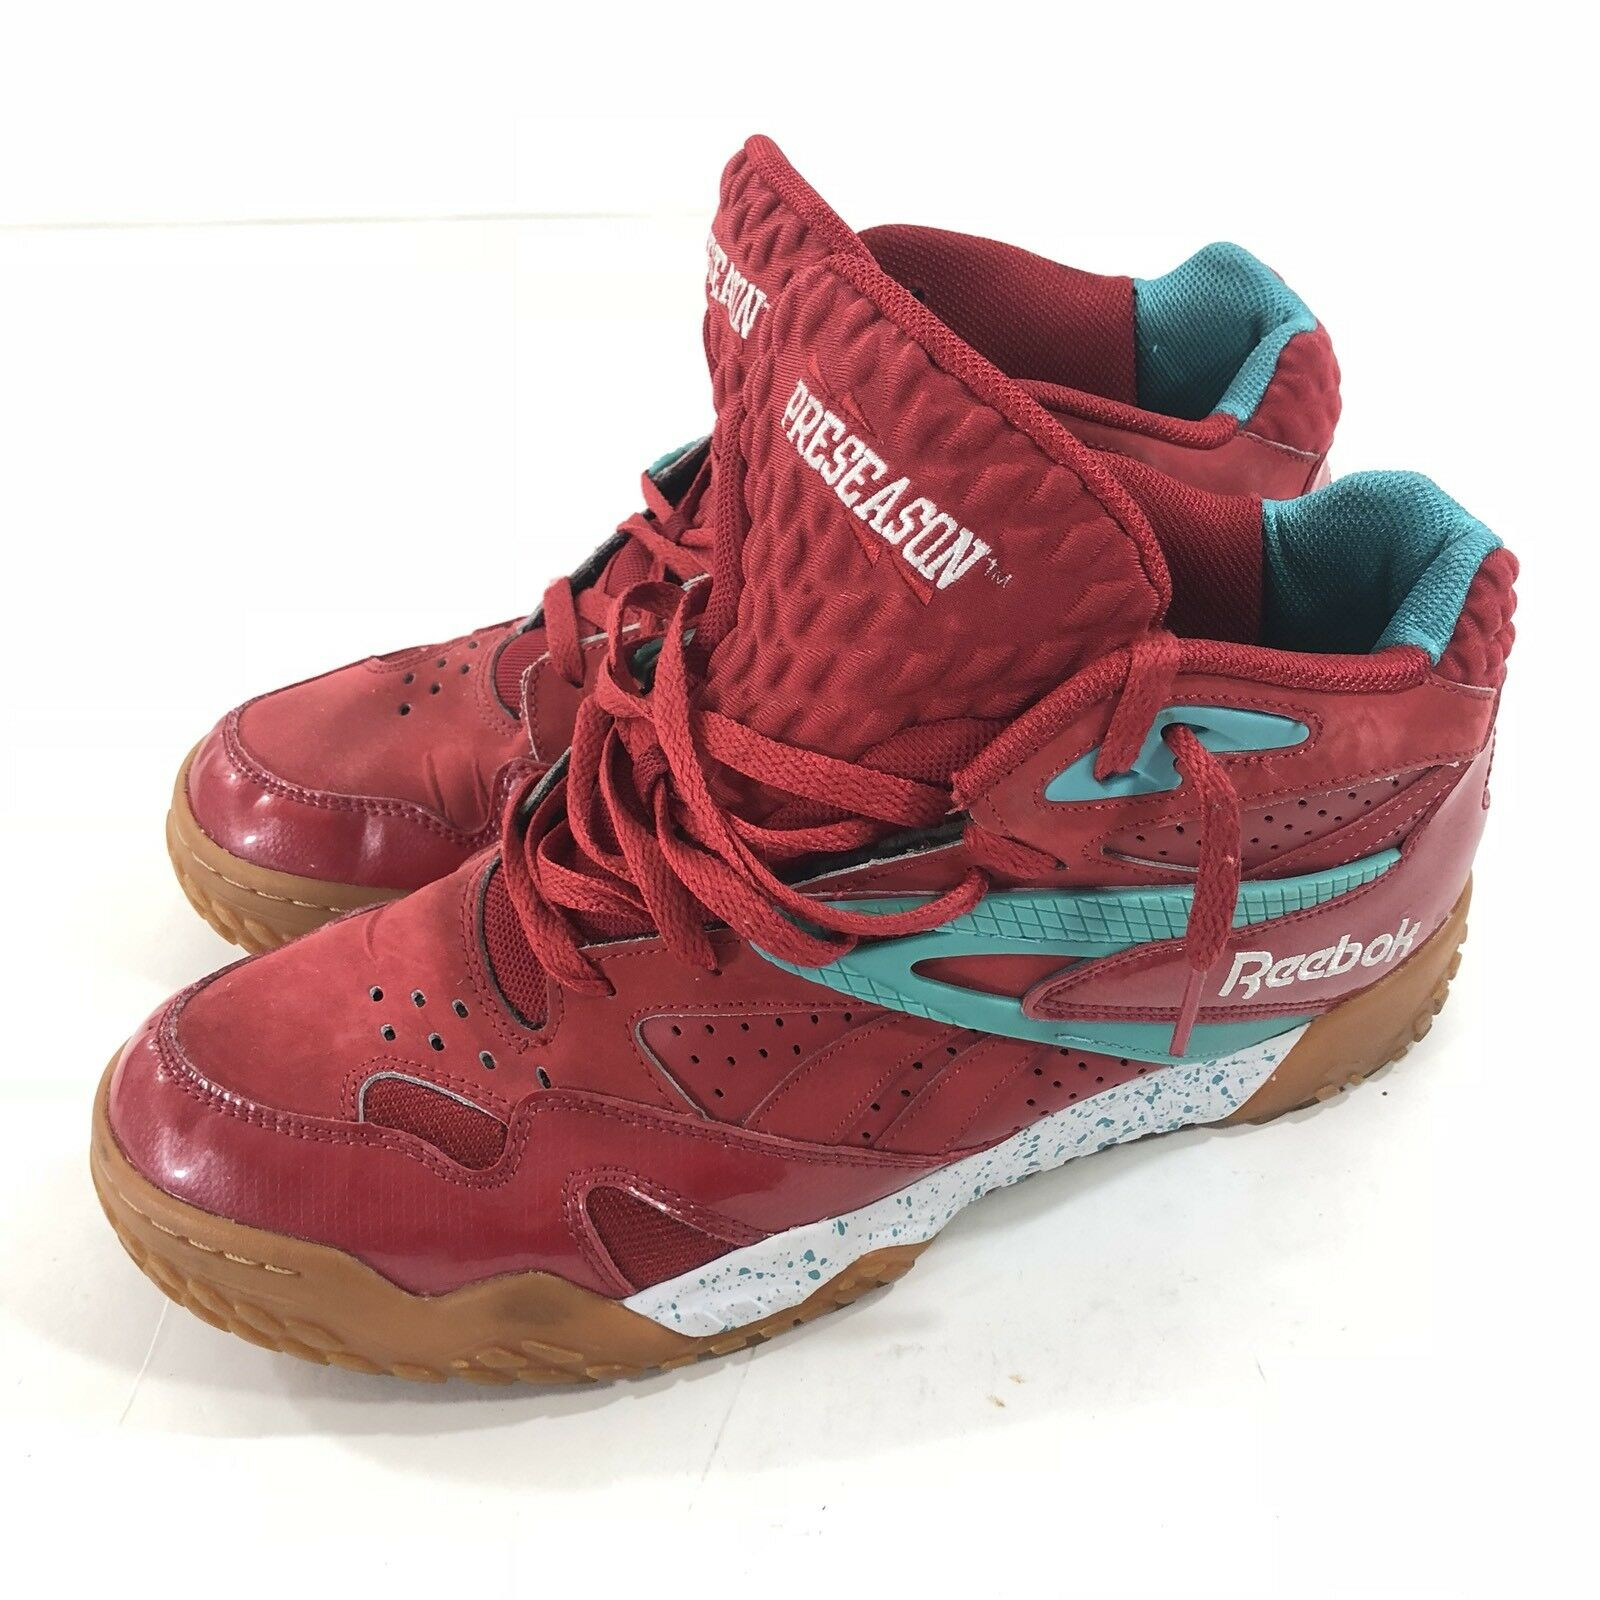 Reebok Preseason Scrimmage Mid Men's shoes Sneakers Red Teal White V53091 SZ 11